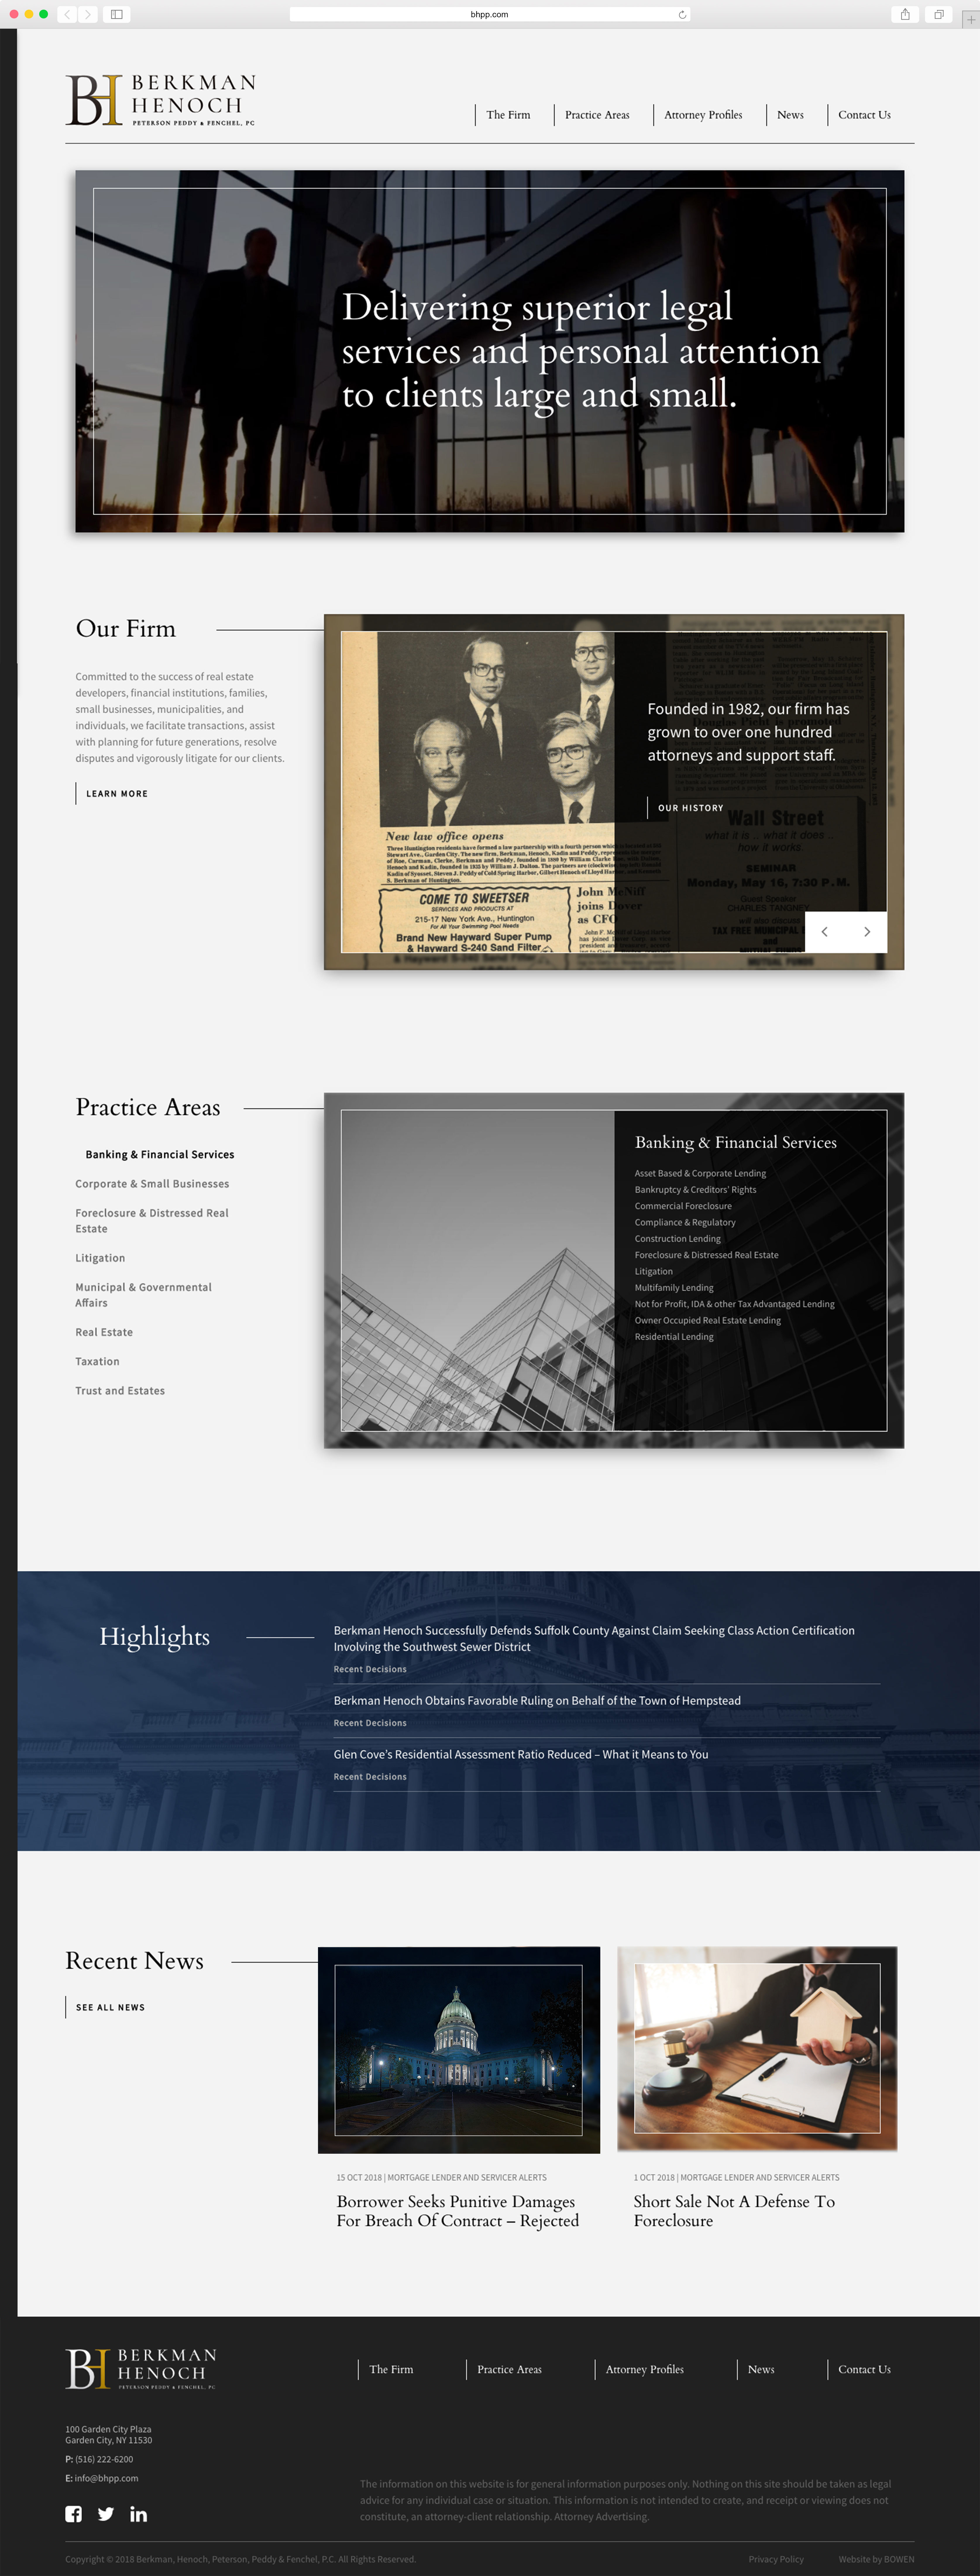 Law firm web design project